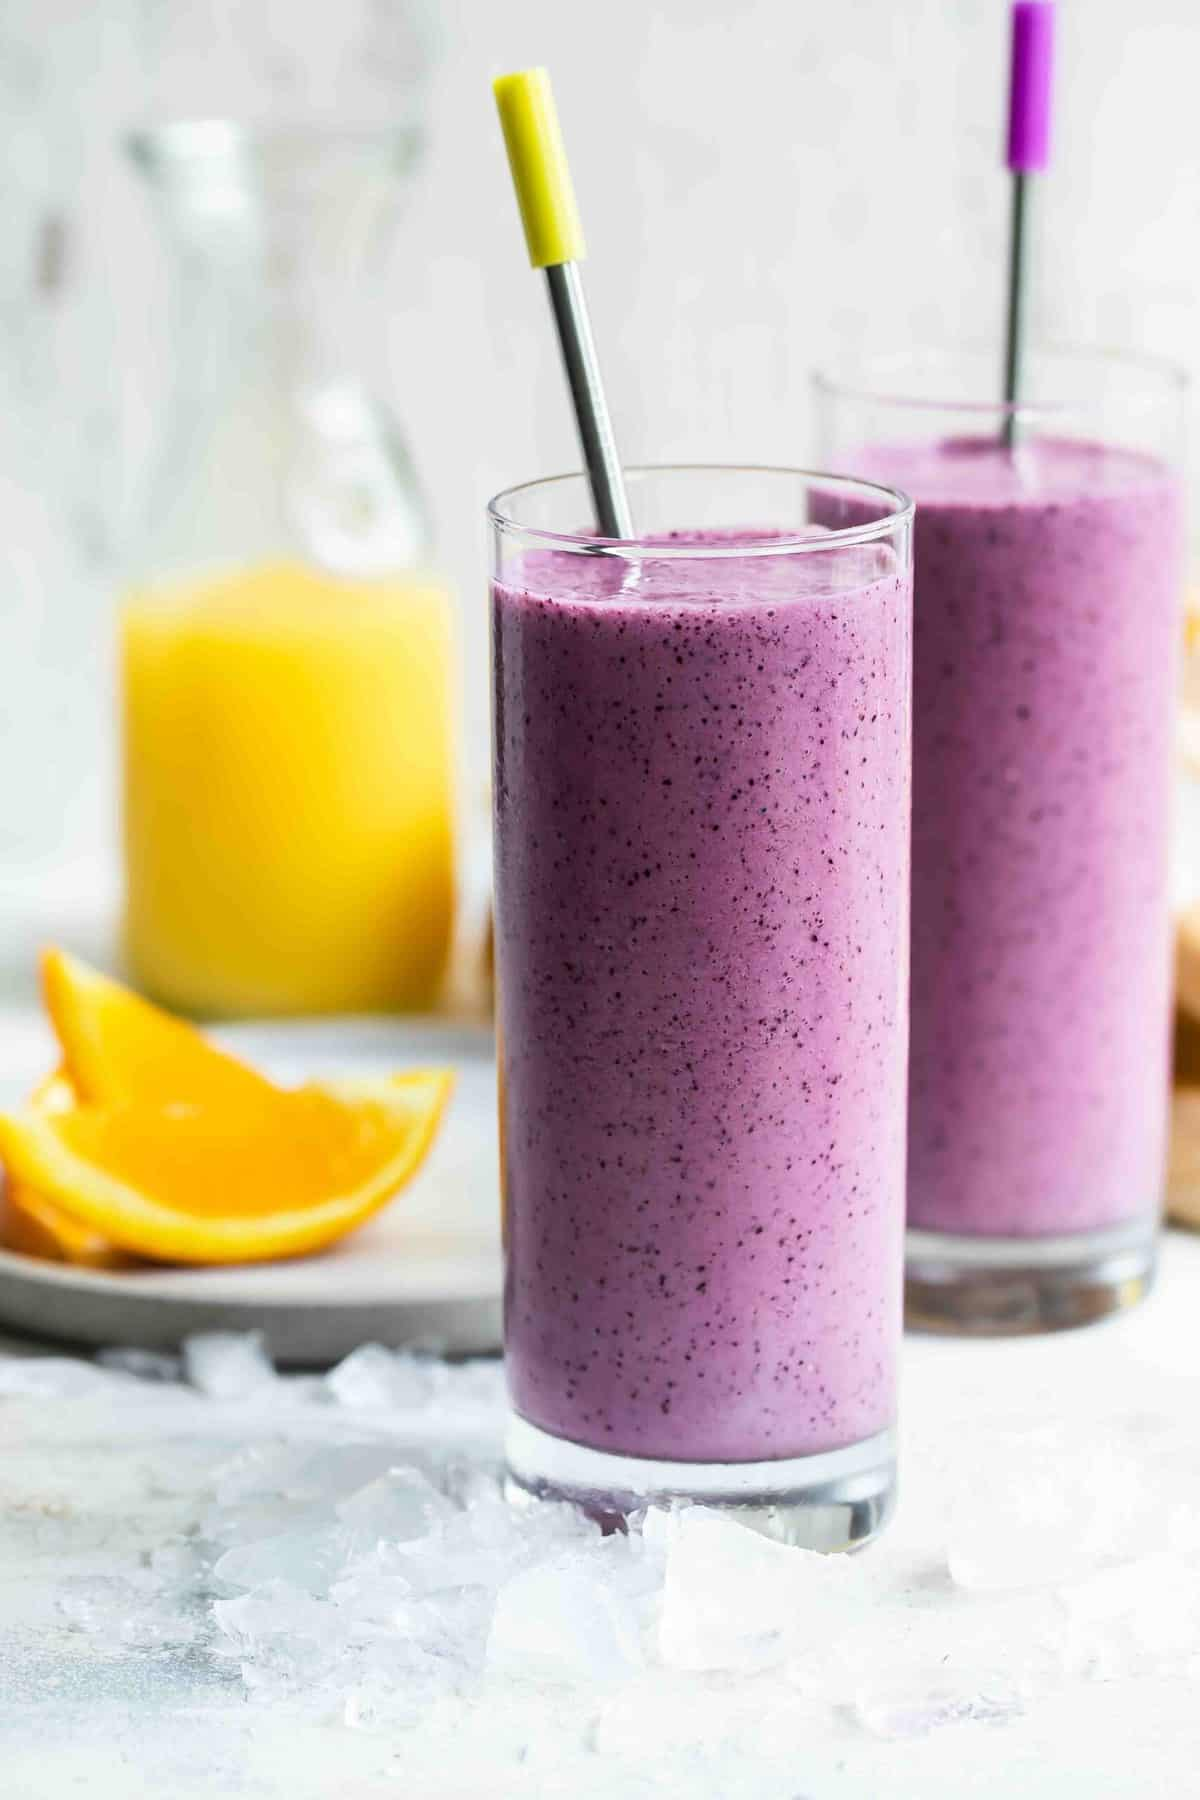 blueberry smoothie with orange juice in tall glasses